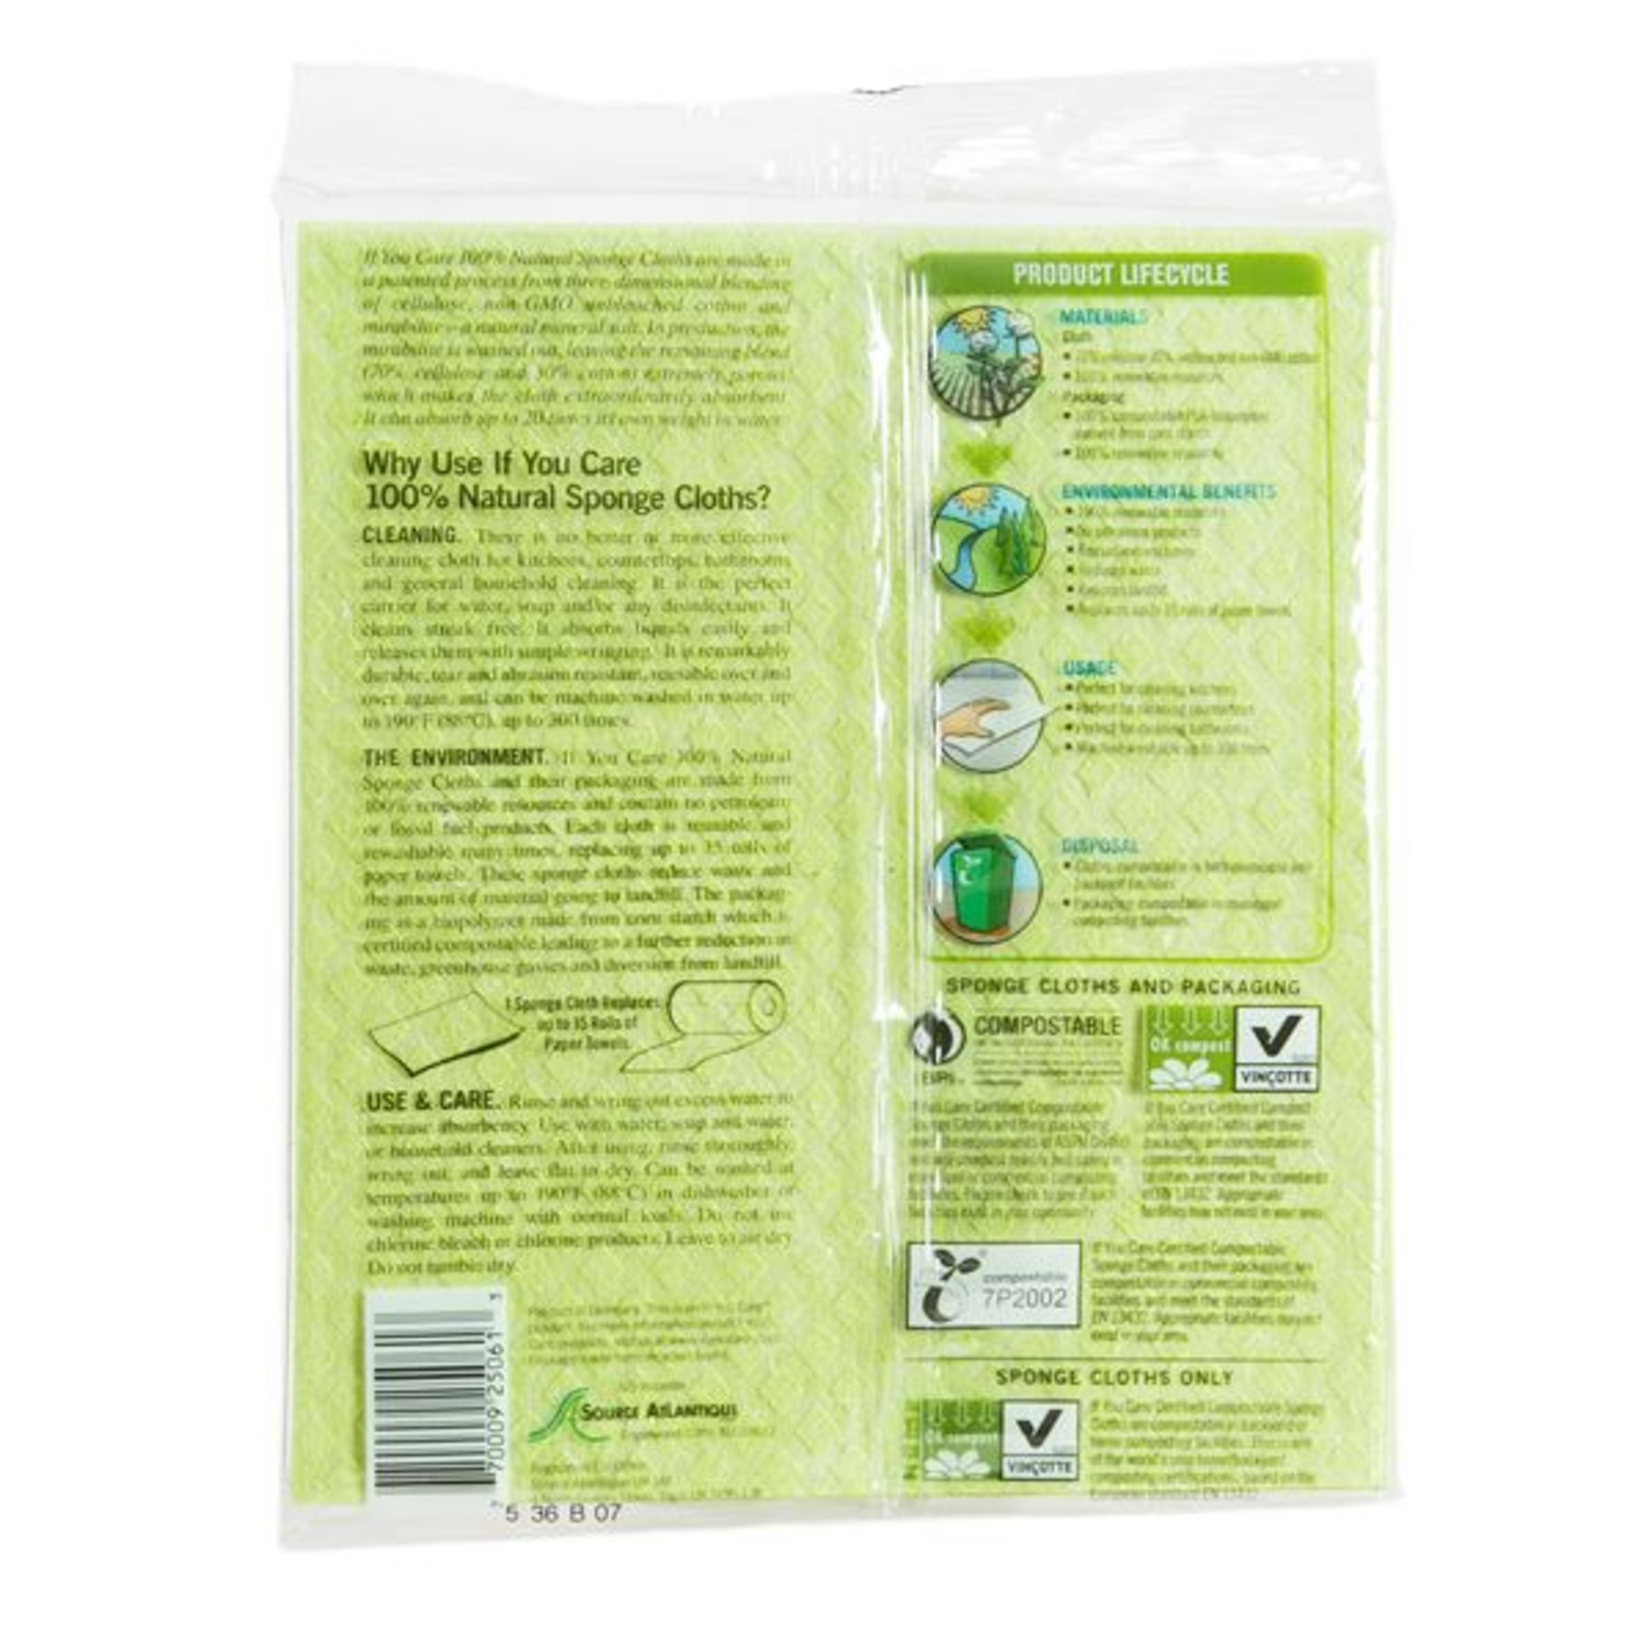 If You Care If You Care Sponge Cloths 5pk